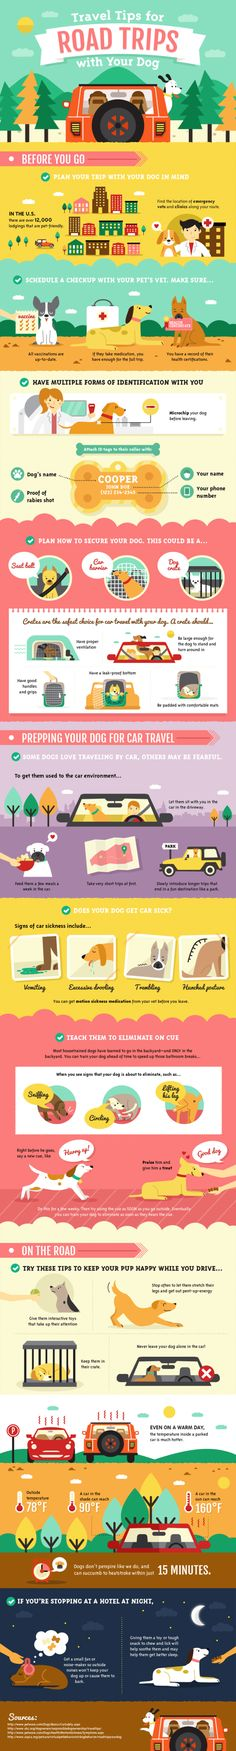 traveling-with-dogs-infographic